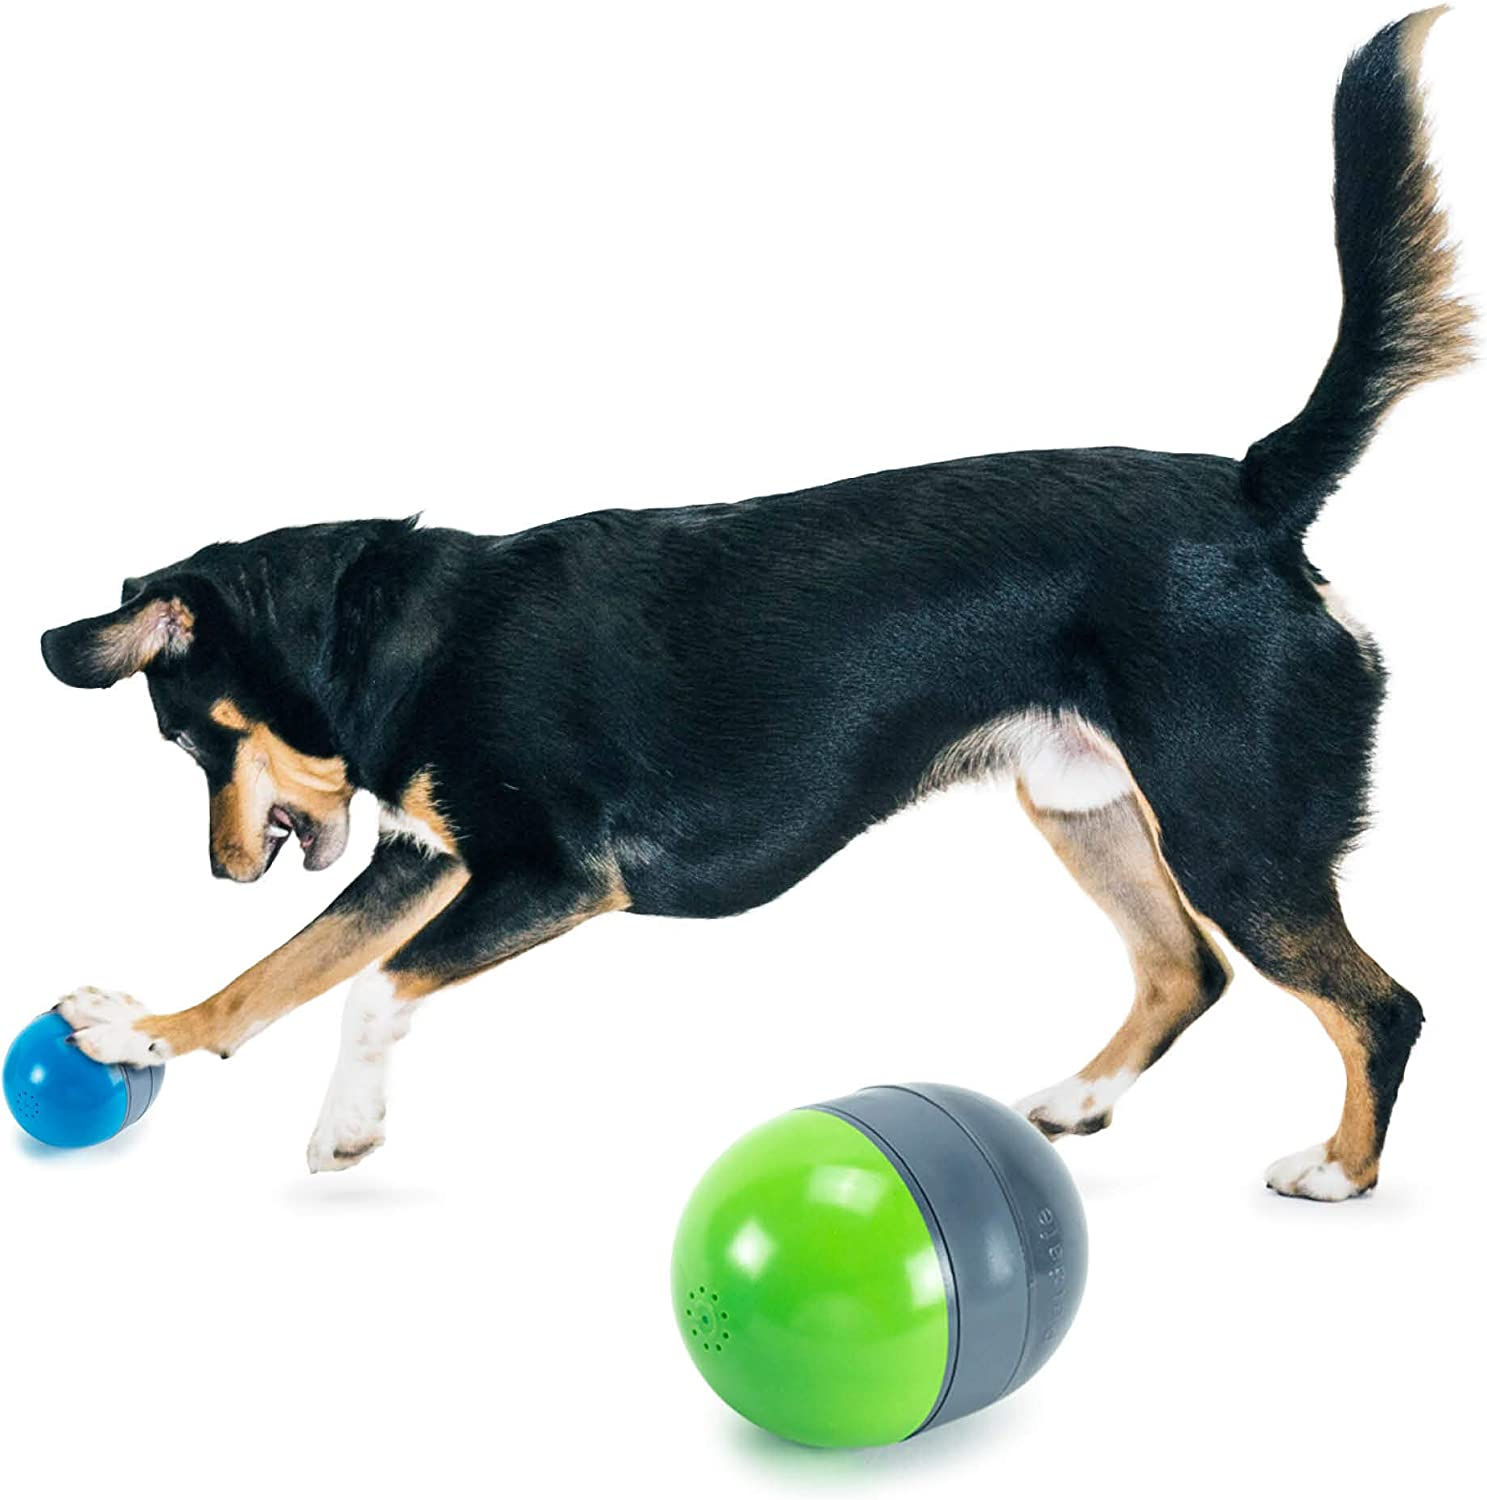 PetSafe Kibble Nibble and Ricochet - Interactive Dog Toys - Engaging Puzzles for Bored, Anxious or Energetic Pets